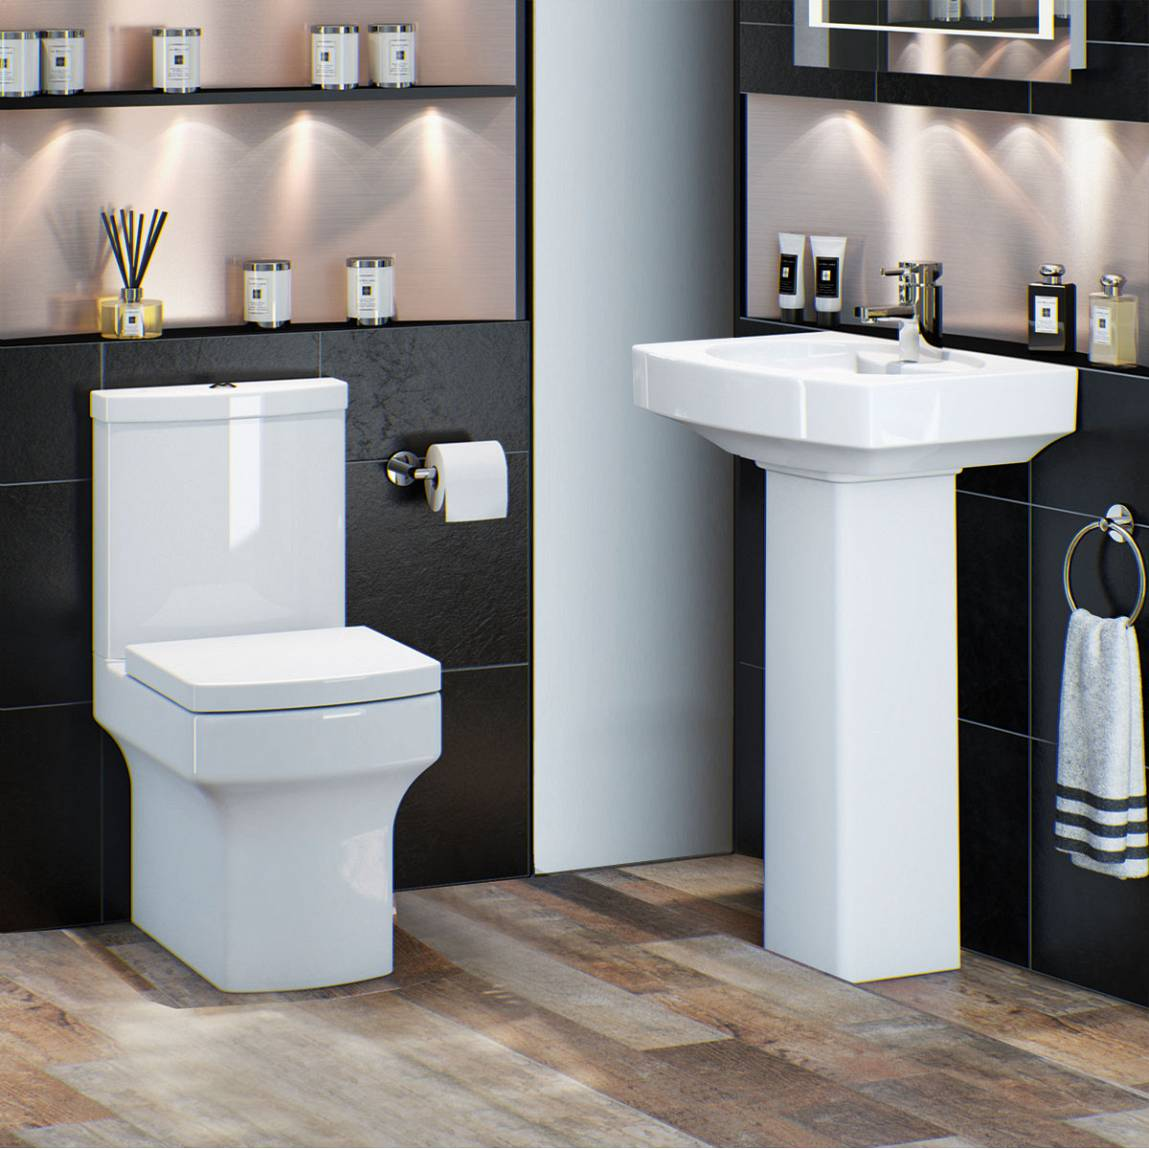 Image of Vermont Toilet and Basin Suite